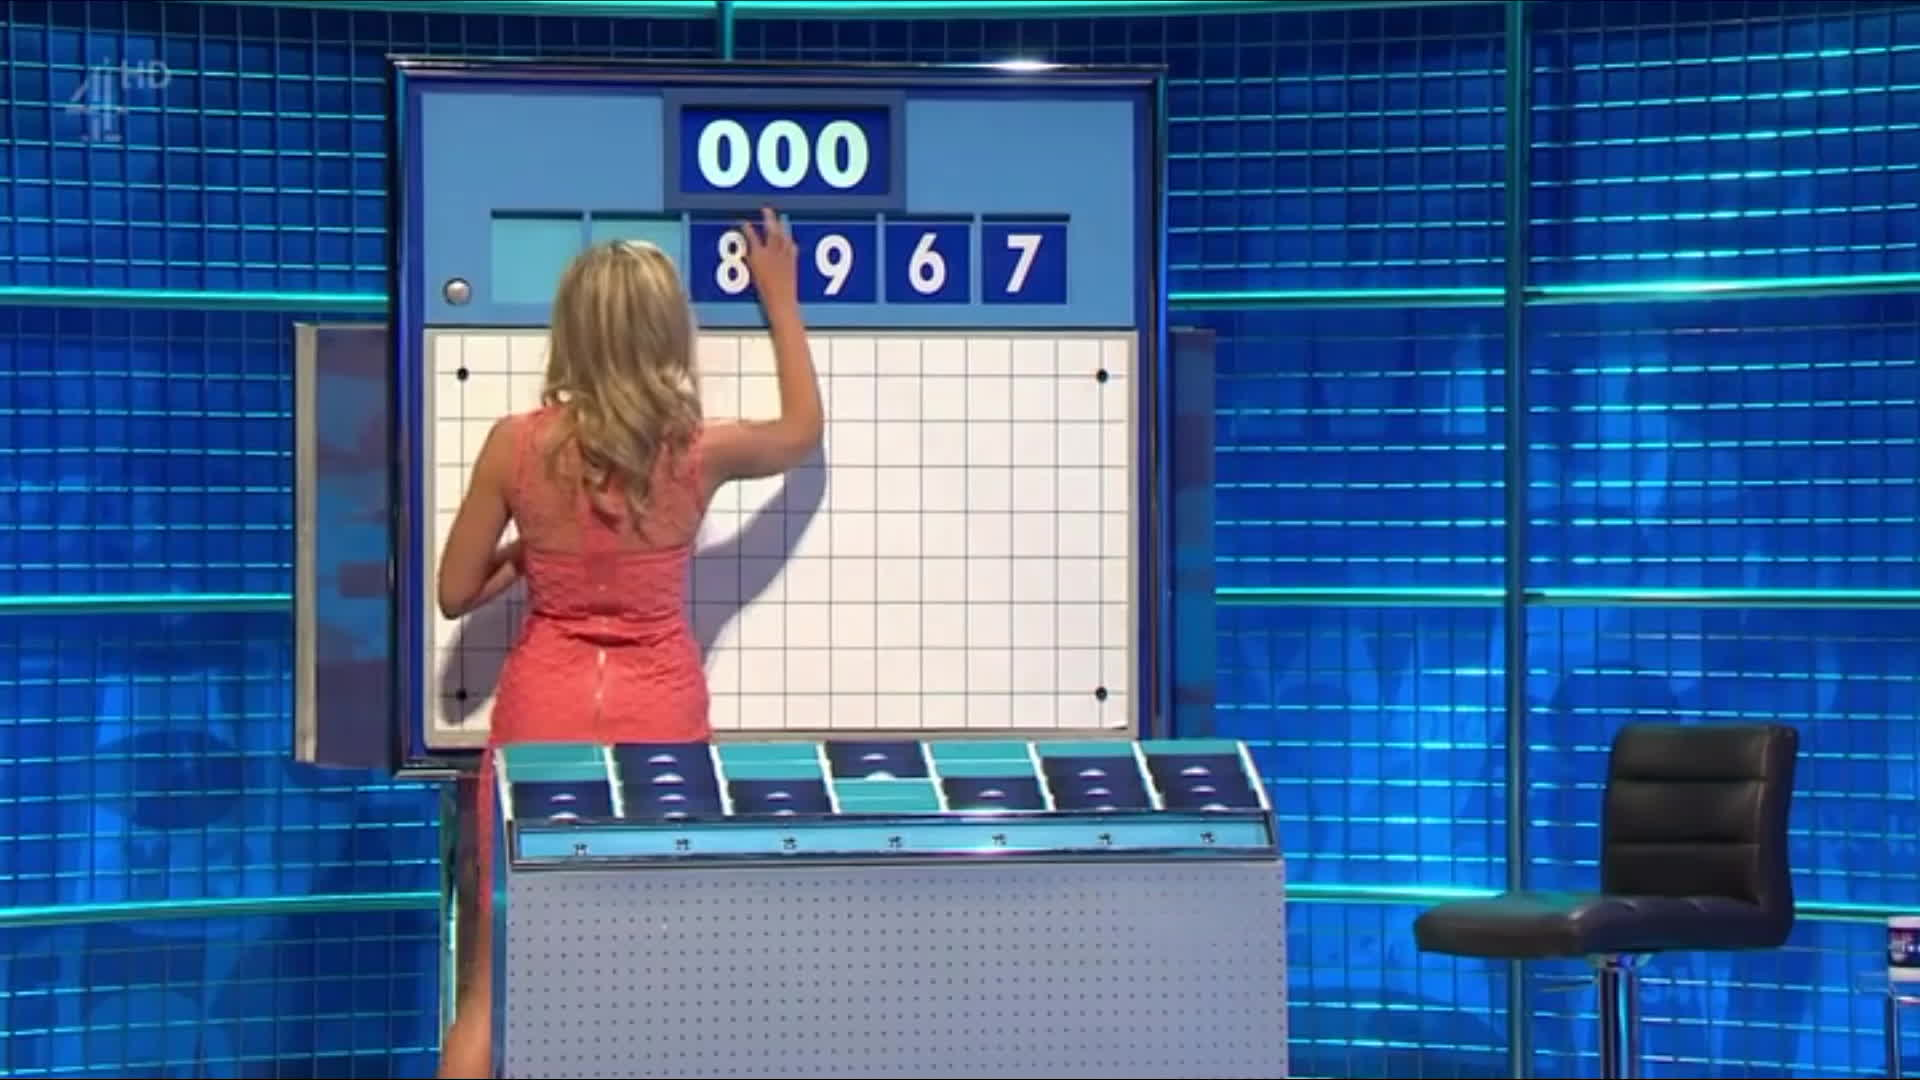 RachelRiley, rachelriley, Anyone got any decent screencaps of this dress from catsdown? (reddit) GIFs